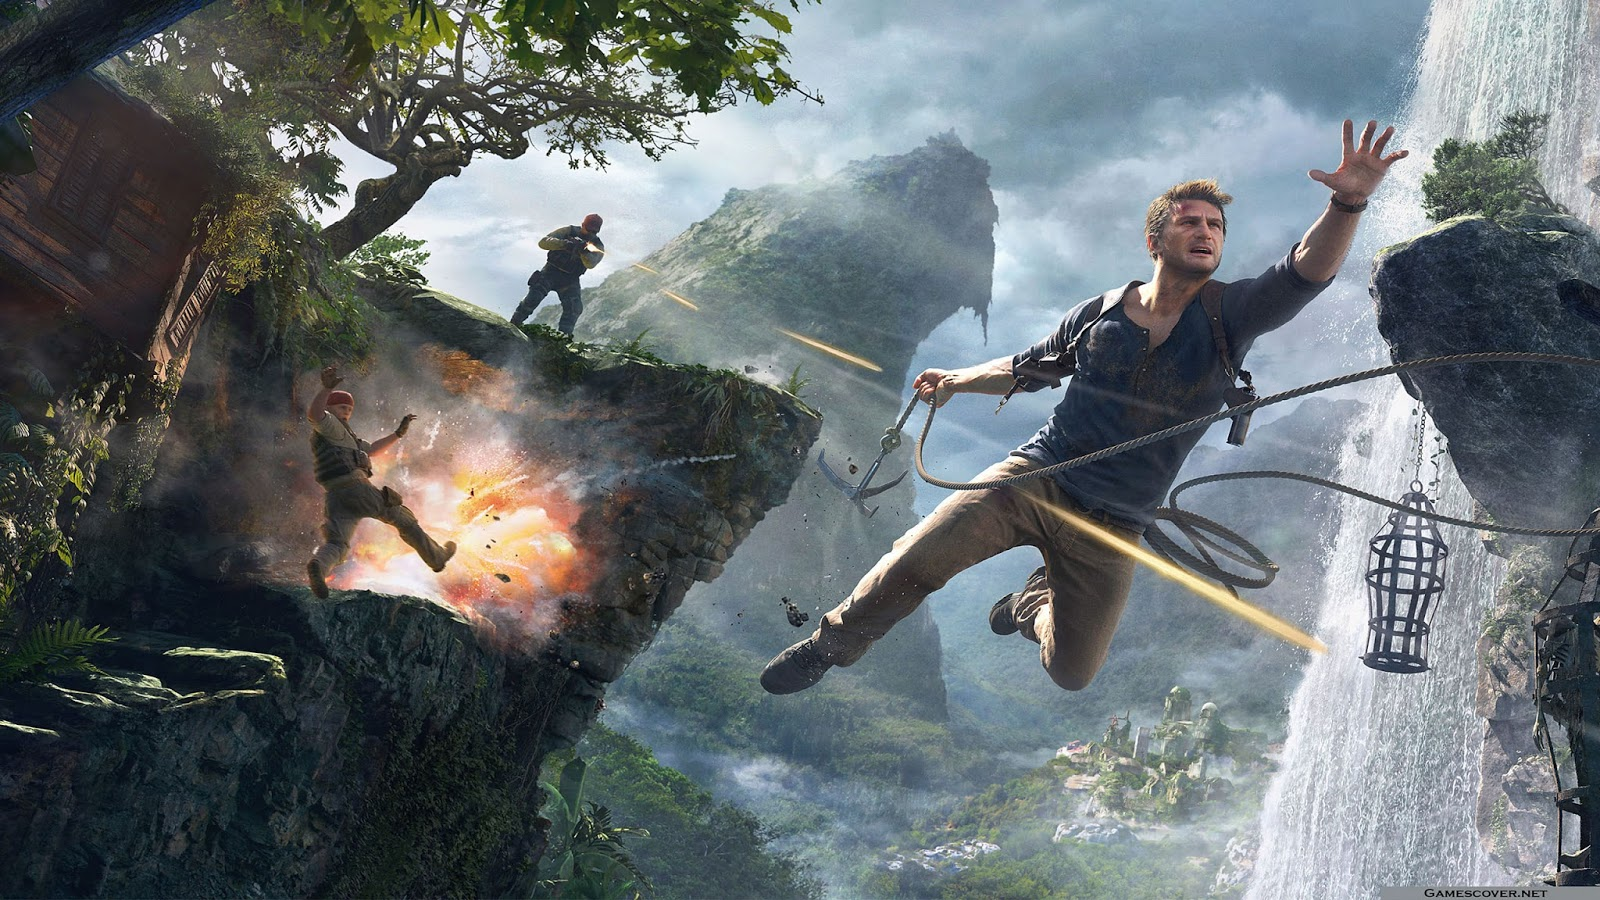 Uncharted 4 Wallpapers | Read games reviews, play online games & download games wallpapers